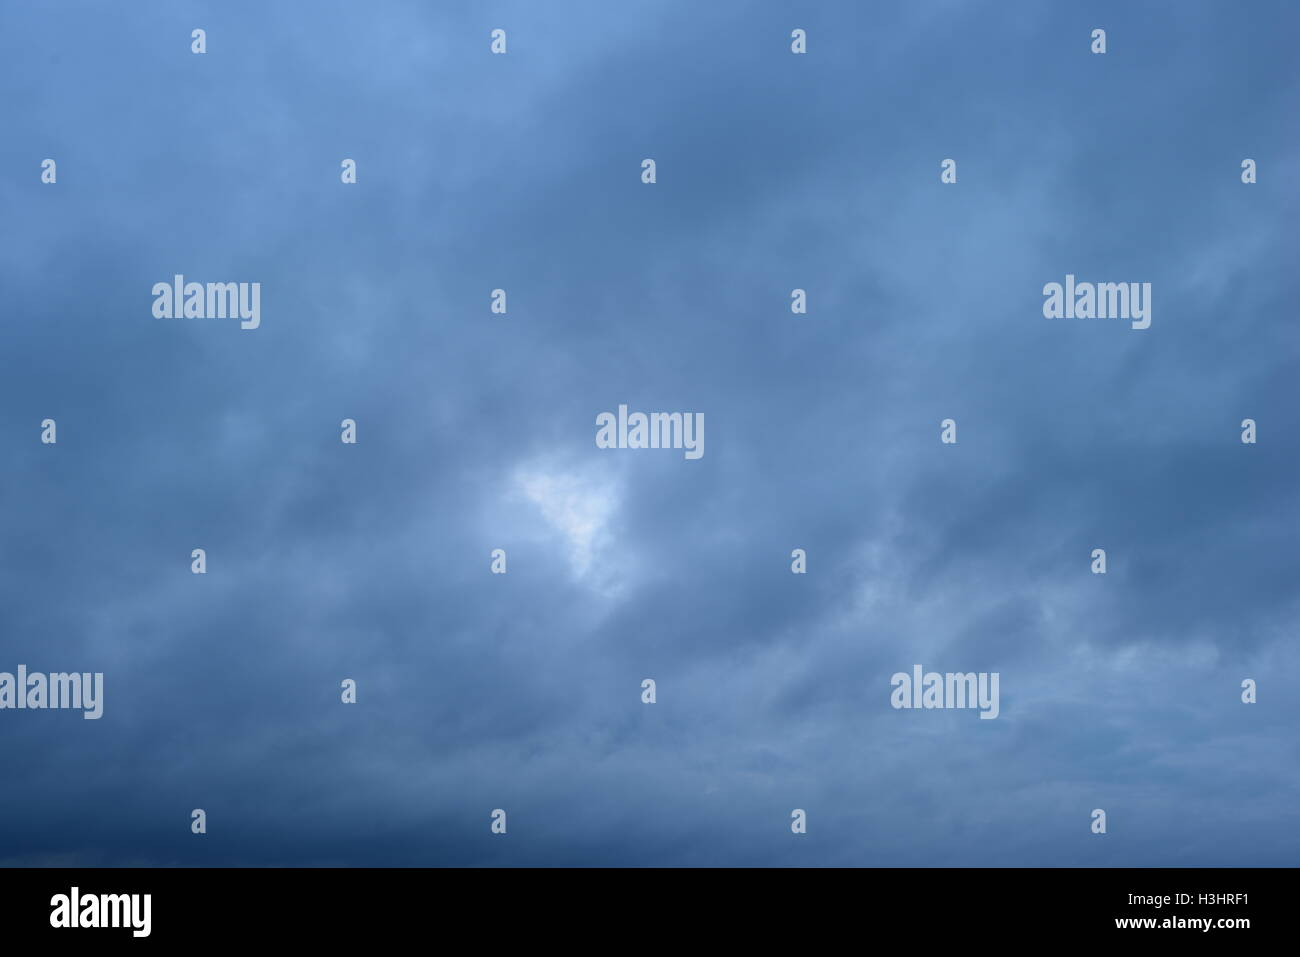 Abstract natural background of the cloudy overcast sky - Stock Image